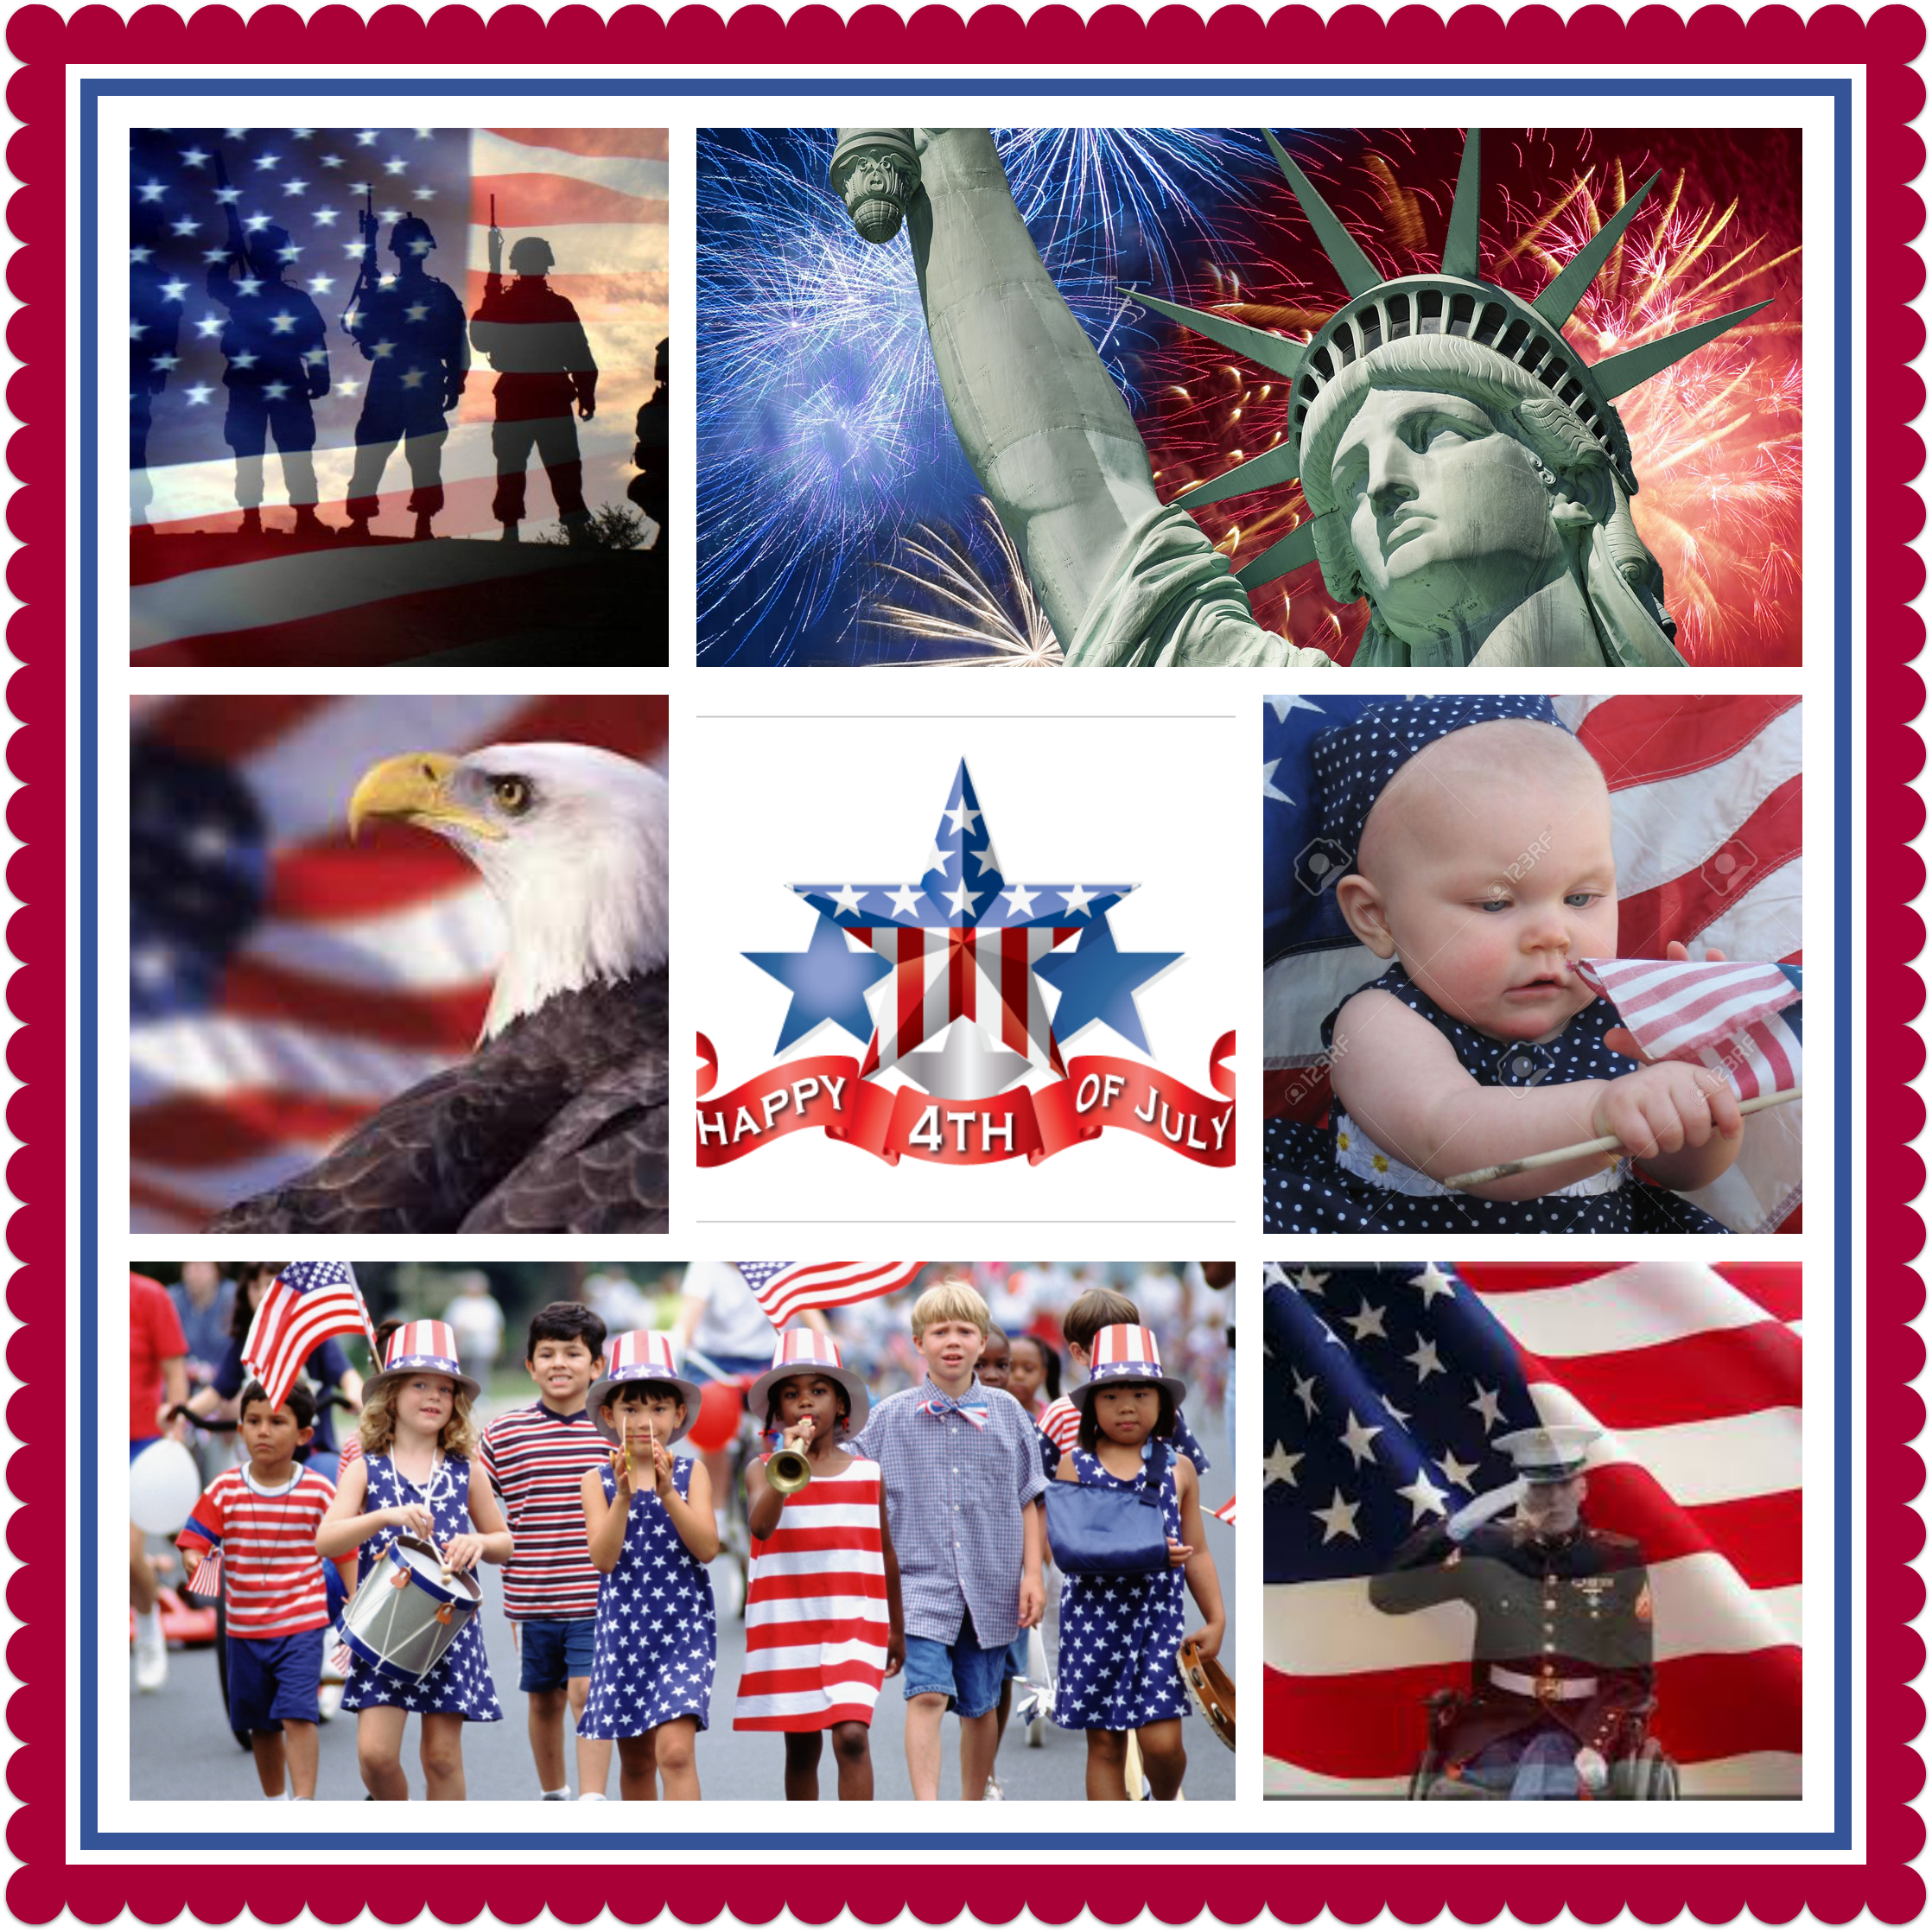 Happy Independence Day, America from The Everyday Home | www.everydayhomeblog.com